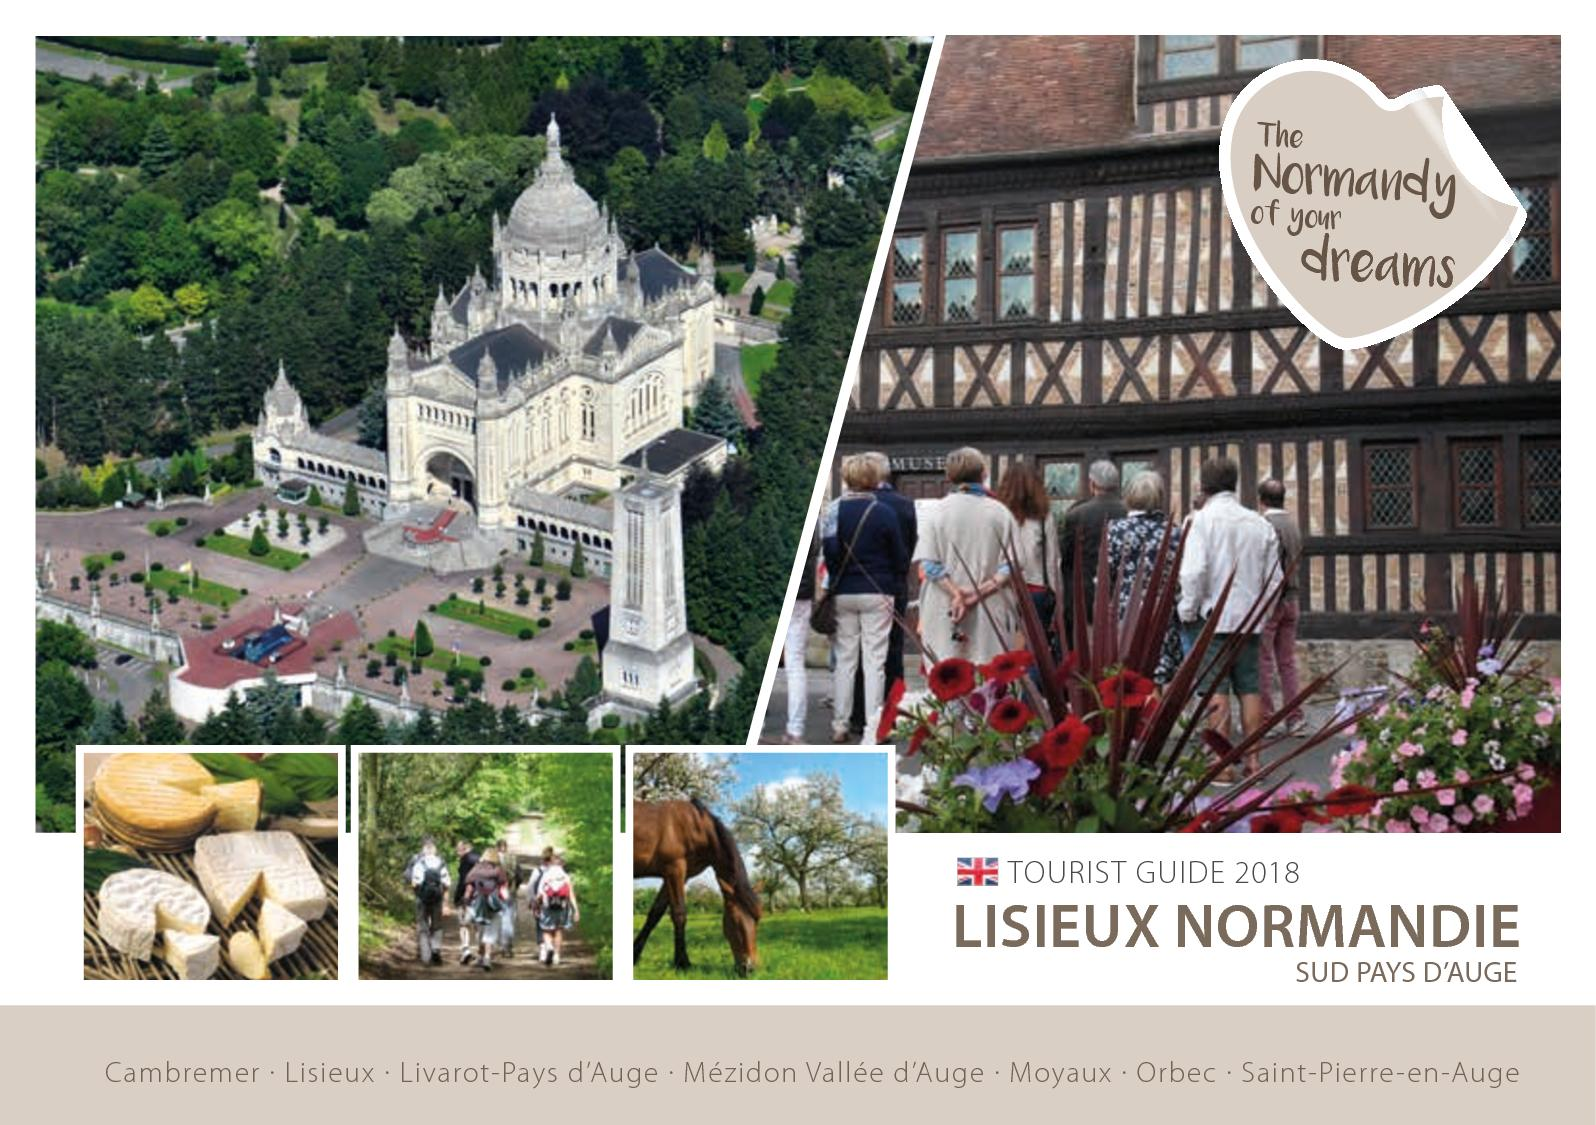 Salon De Jardin Leclerc Best Of Calaméo Gb tourist Guide 2018 Lisieux norman Of 74 Unique Salon De Jardin Leclerc